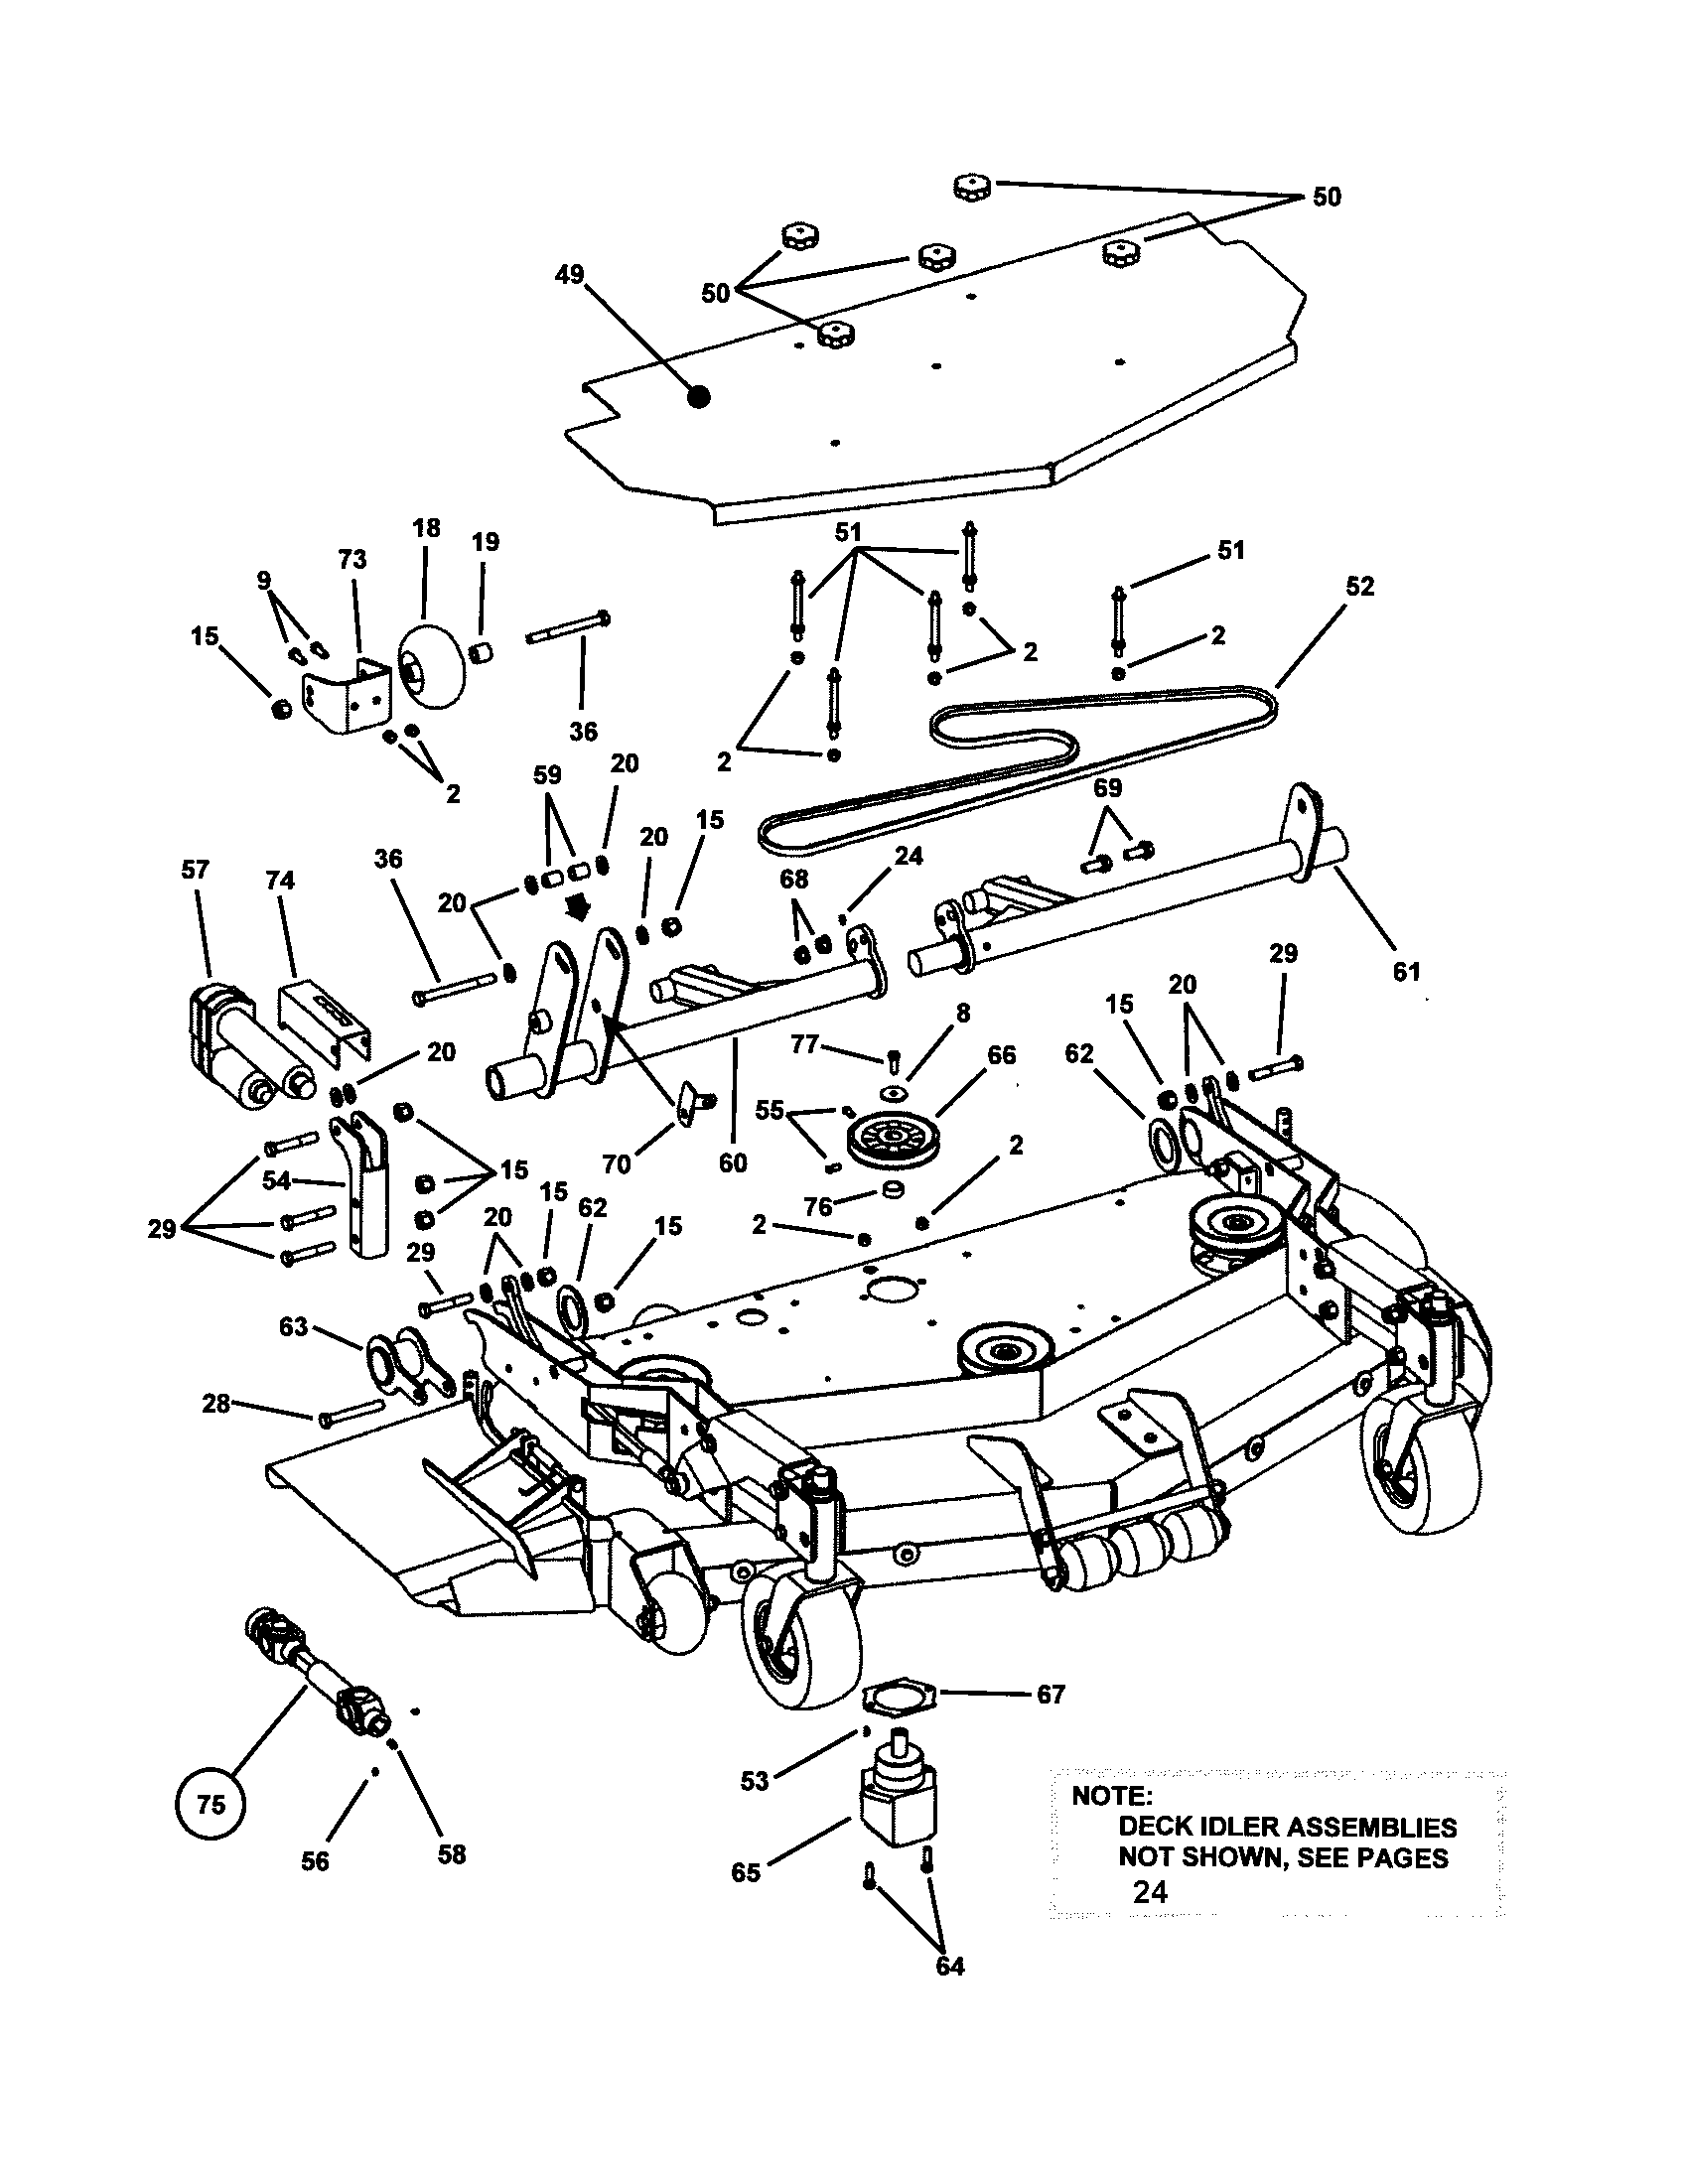 Snapper Rear Engine Riding Mower Wiring Schematic Snapper